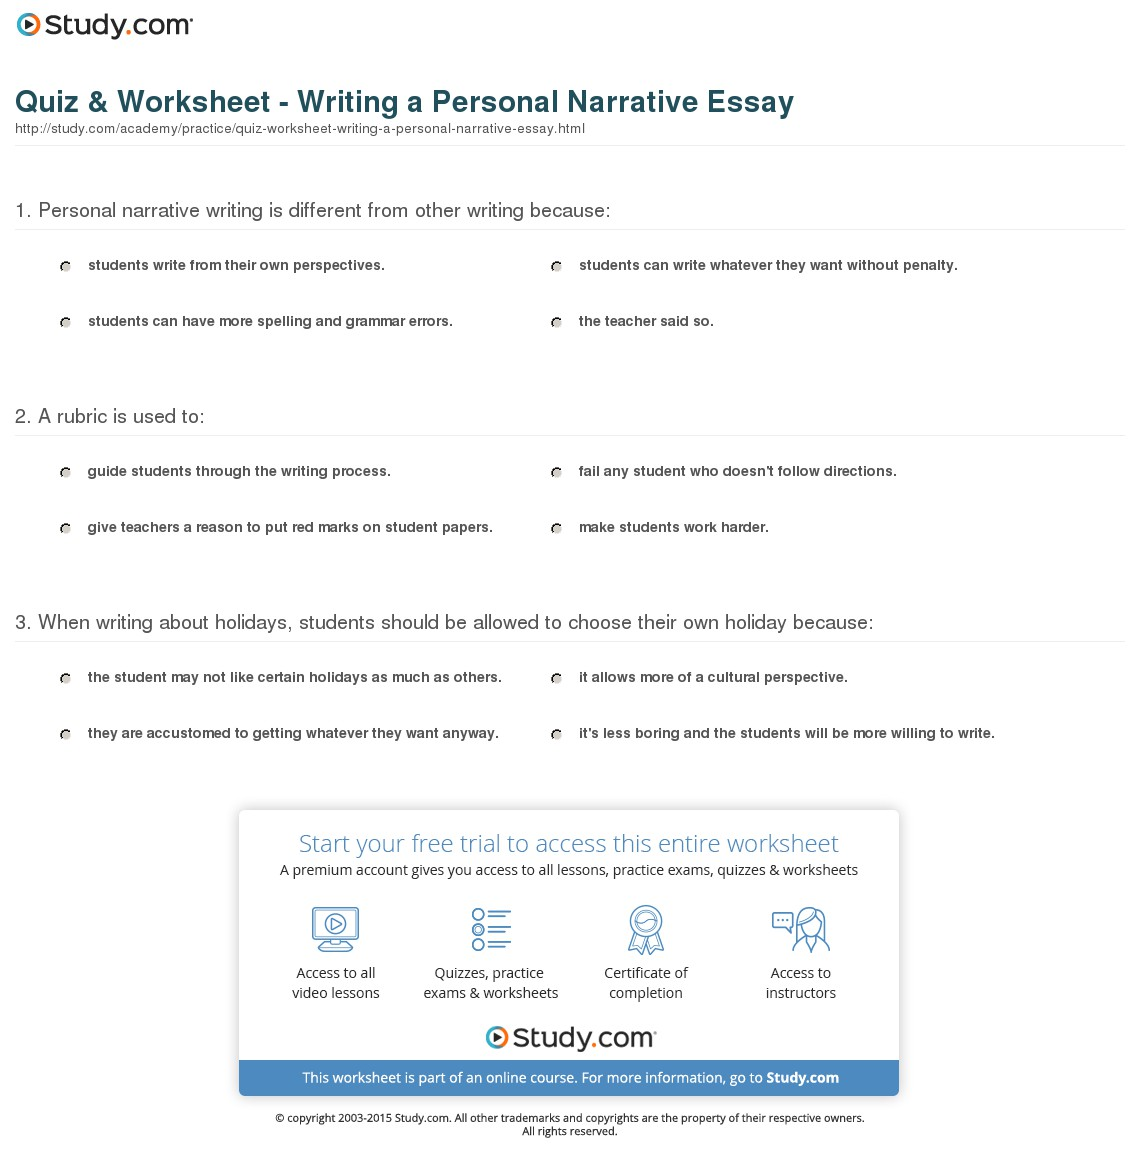 015 Personal Narrative Essay Example Quiz Worksheet Writing Stirring Examples For 2nd Graders Topics Grade 6 Middle School Pdf Full